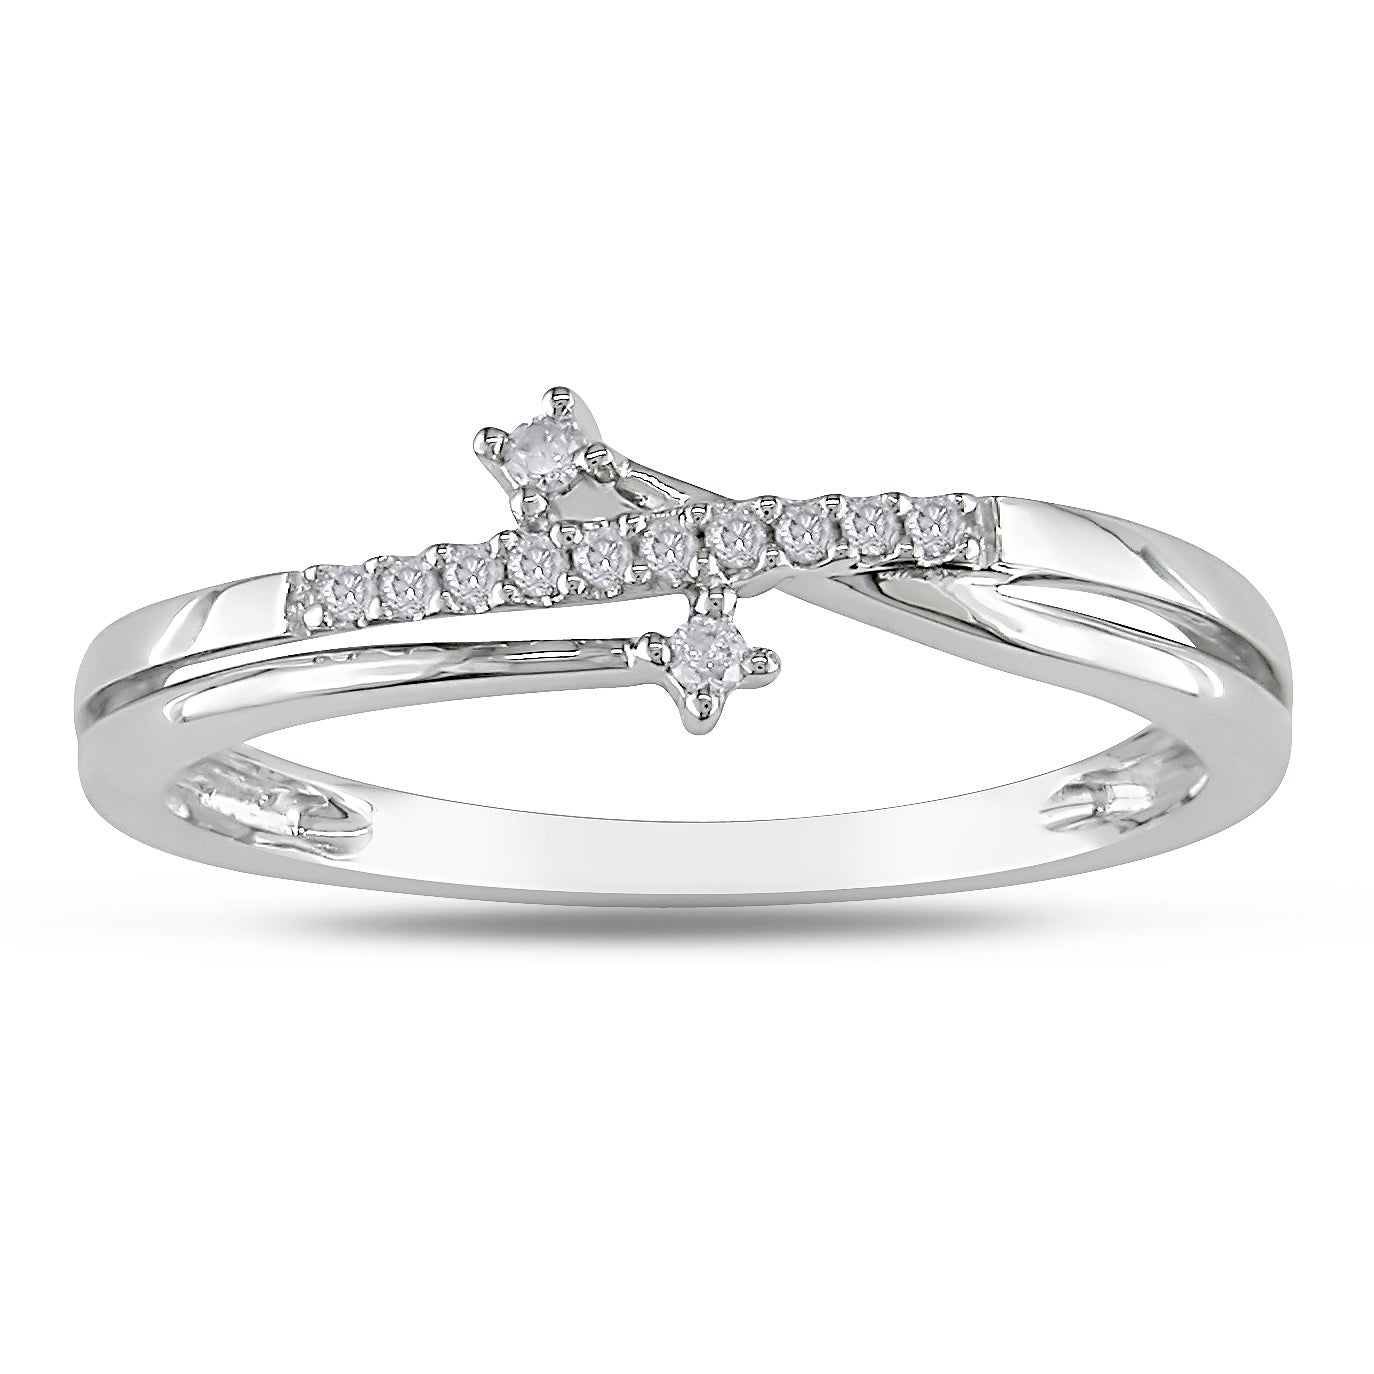 Haylee Jewels 10k White Gold Diamond Accent Ring